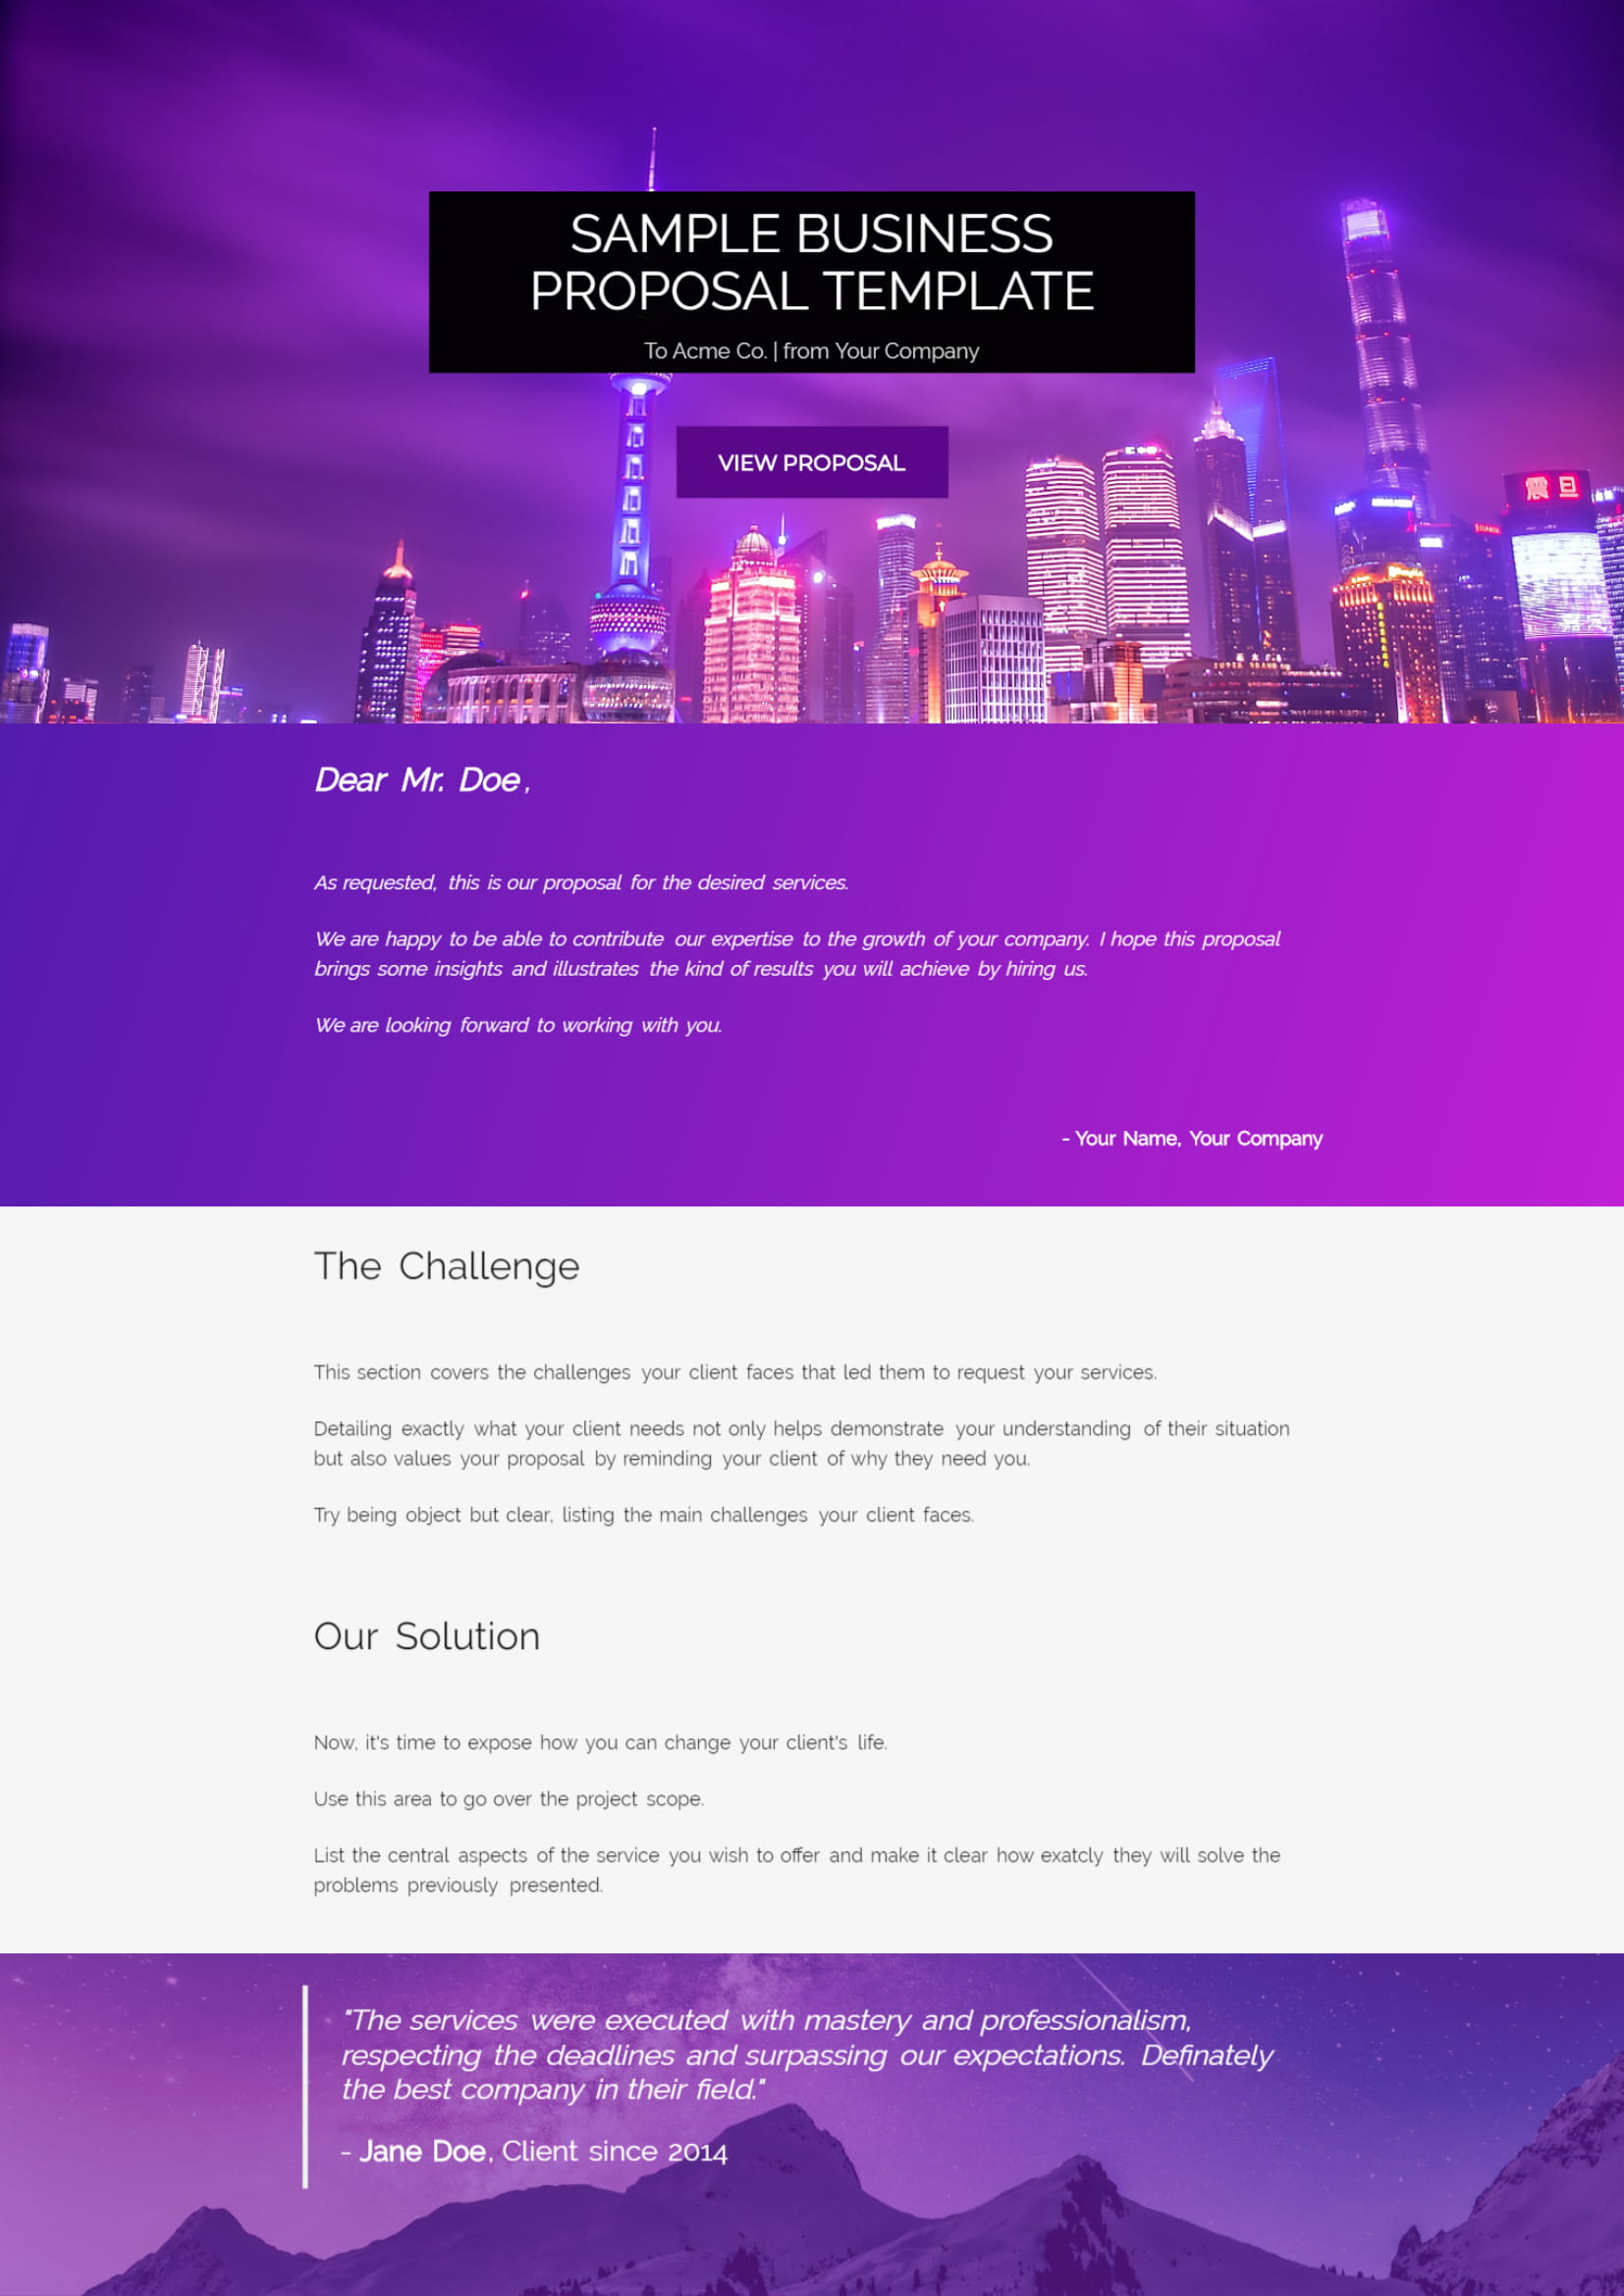 business-proposal-template-2